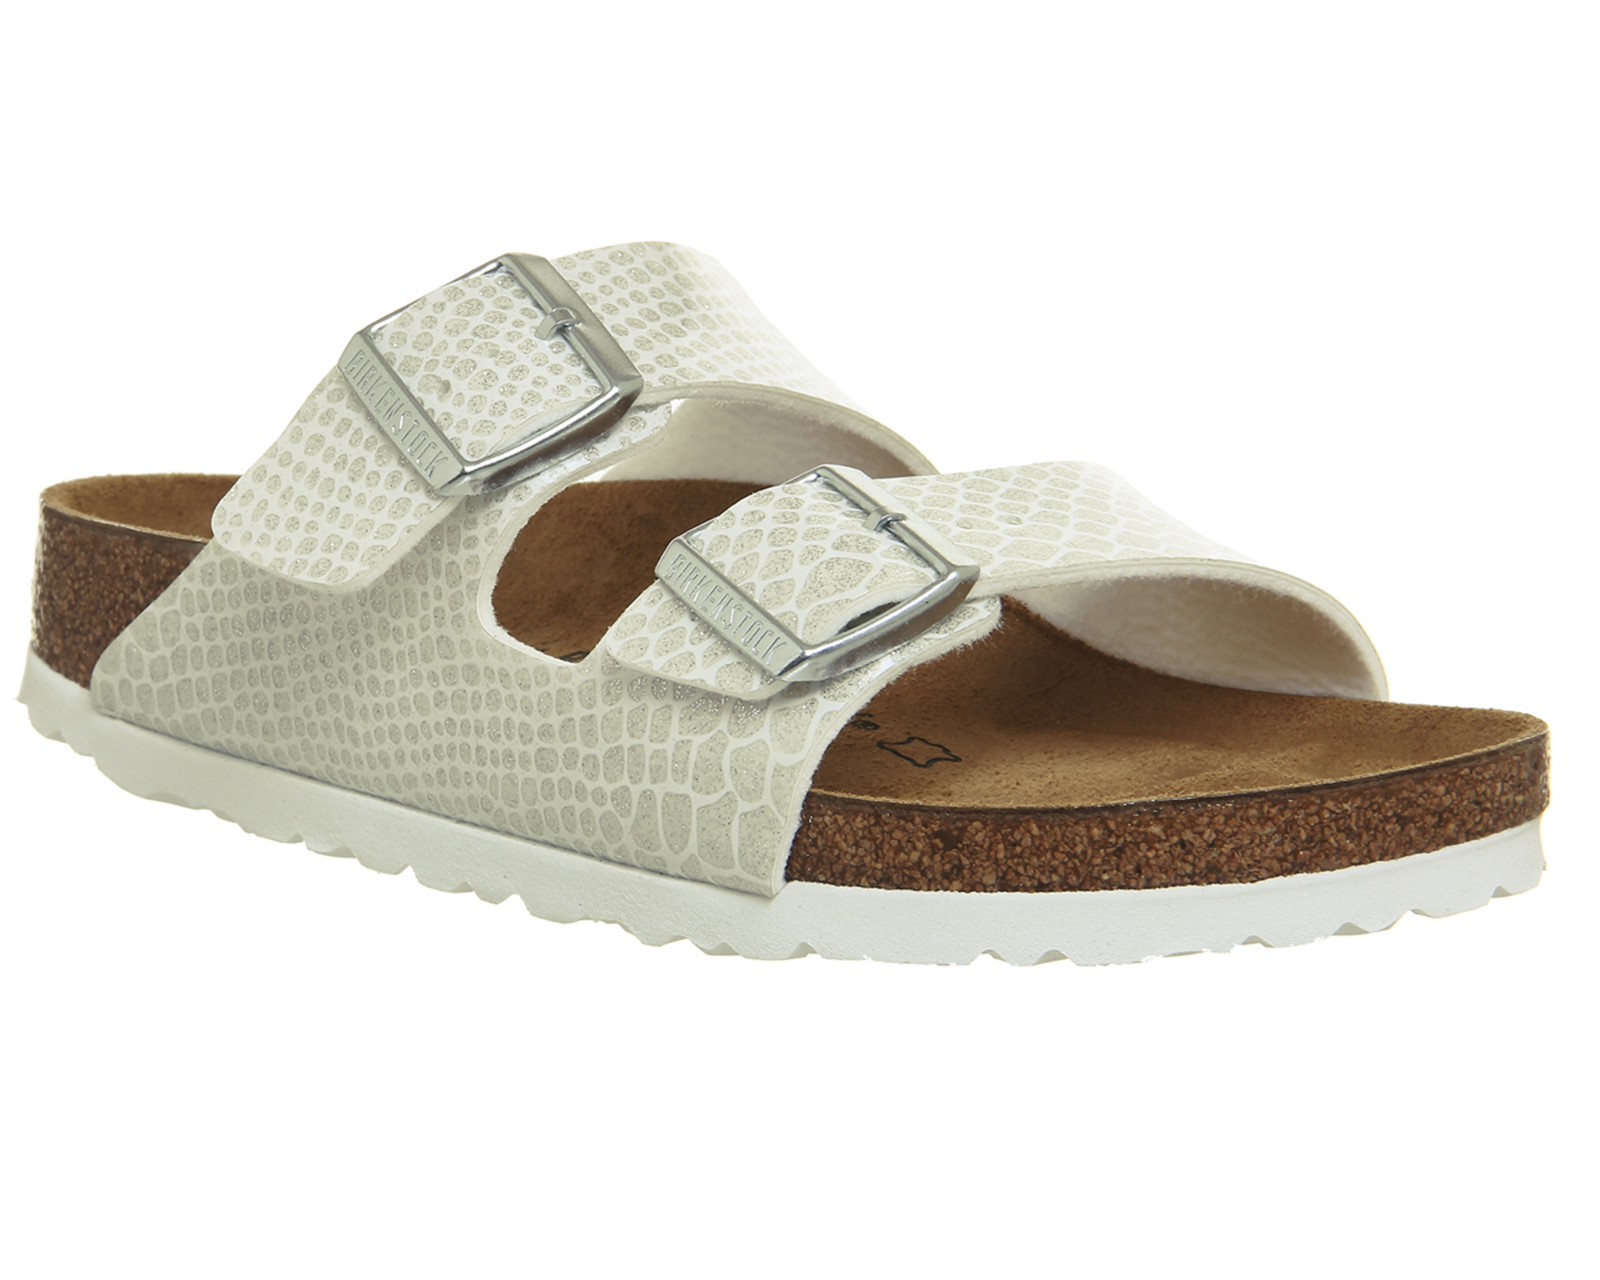 7f9cd7c4794064 WÄCHTER Womens Birkenstock Arizona zwei Riemchensandalen MAGIC SNAKE weiße  Sandalen